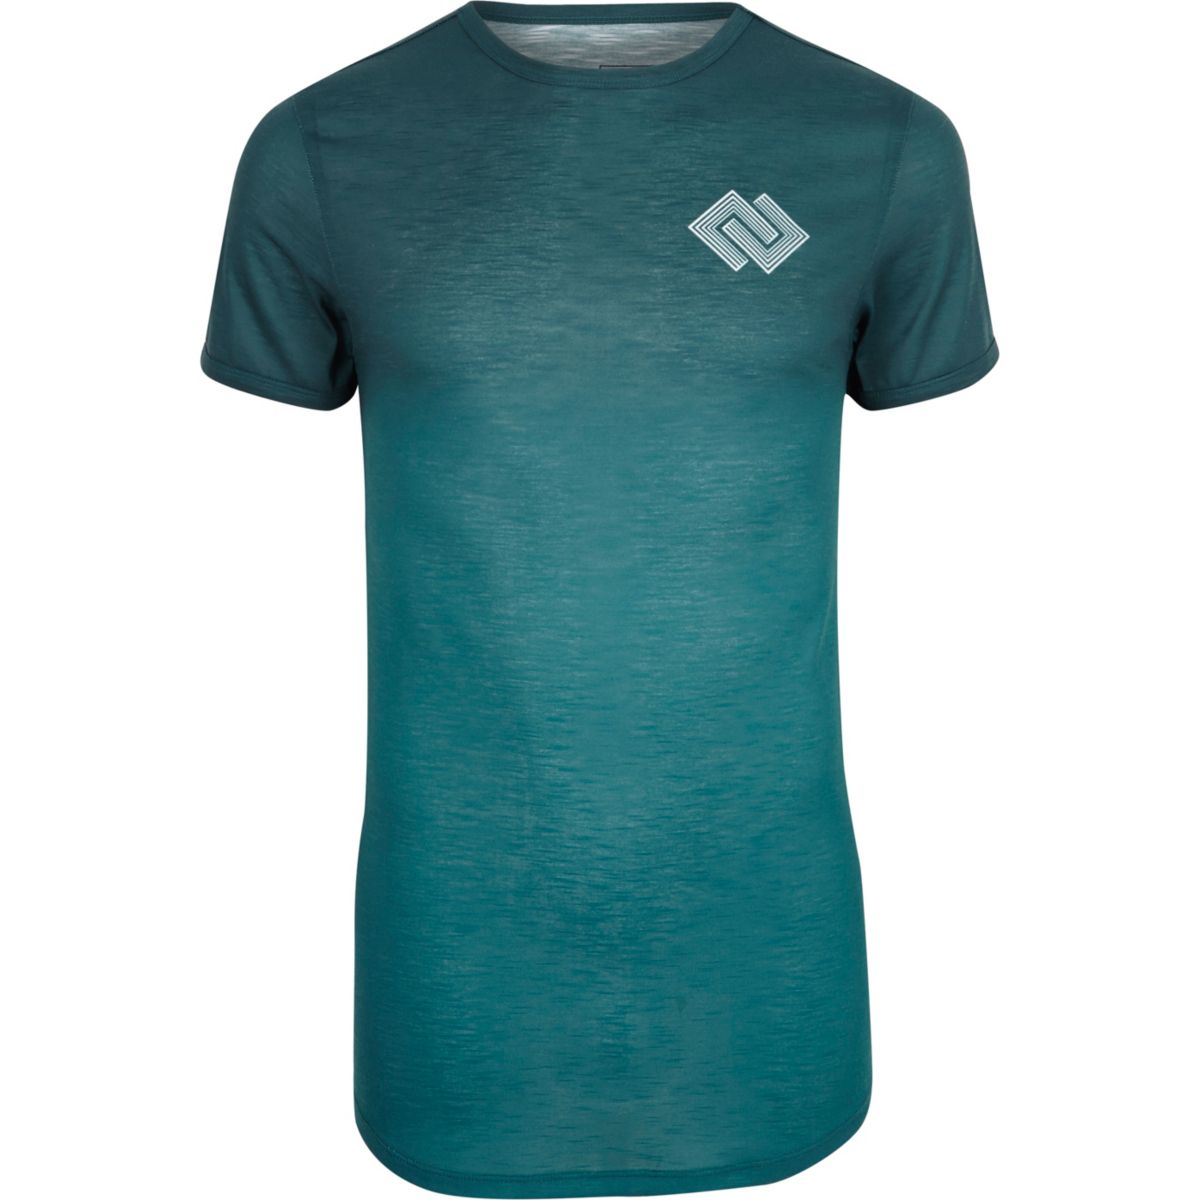 Teal geo print muscle fit T-shirt